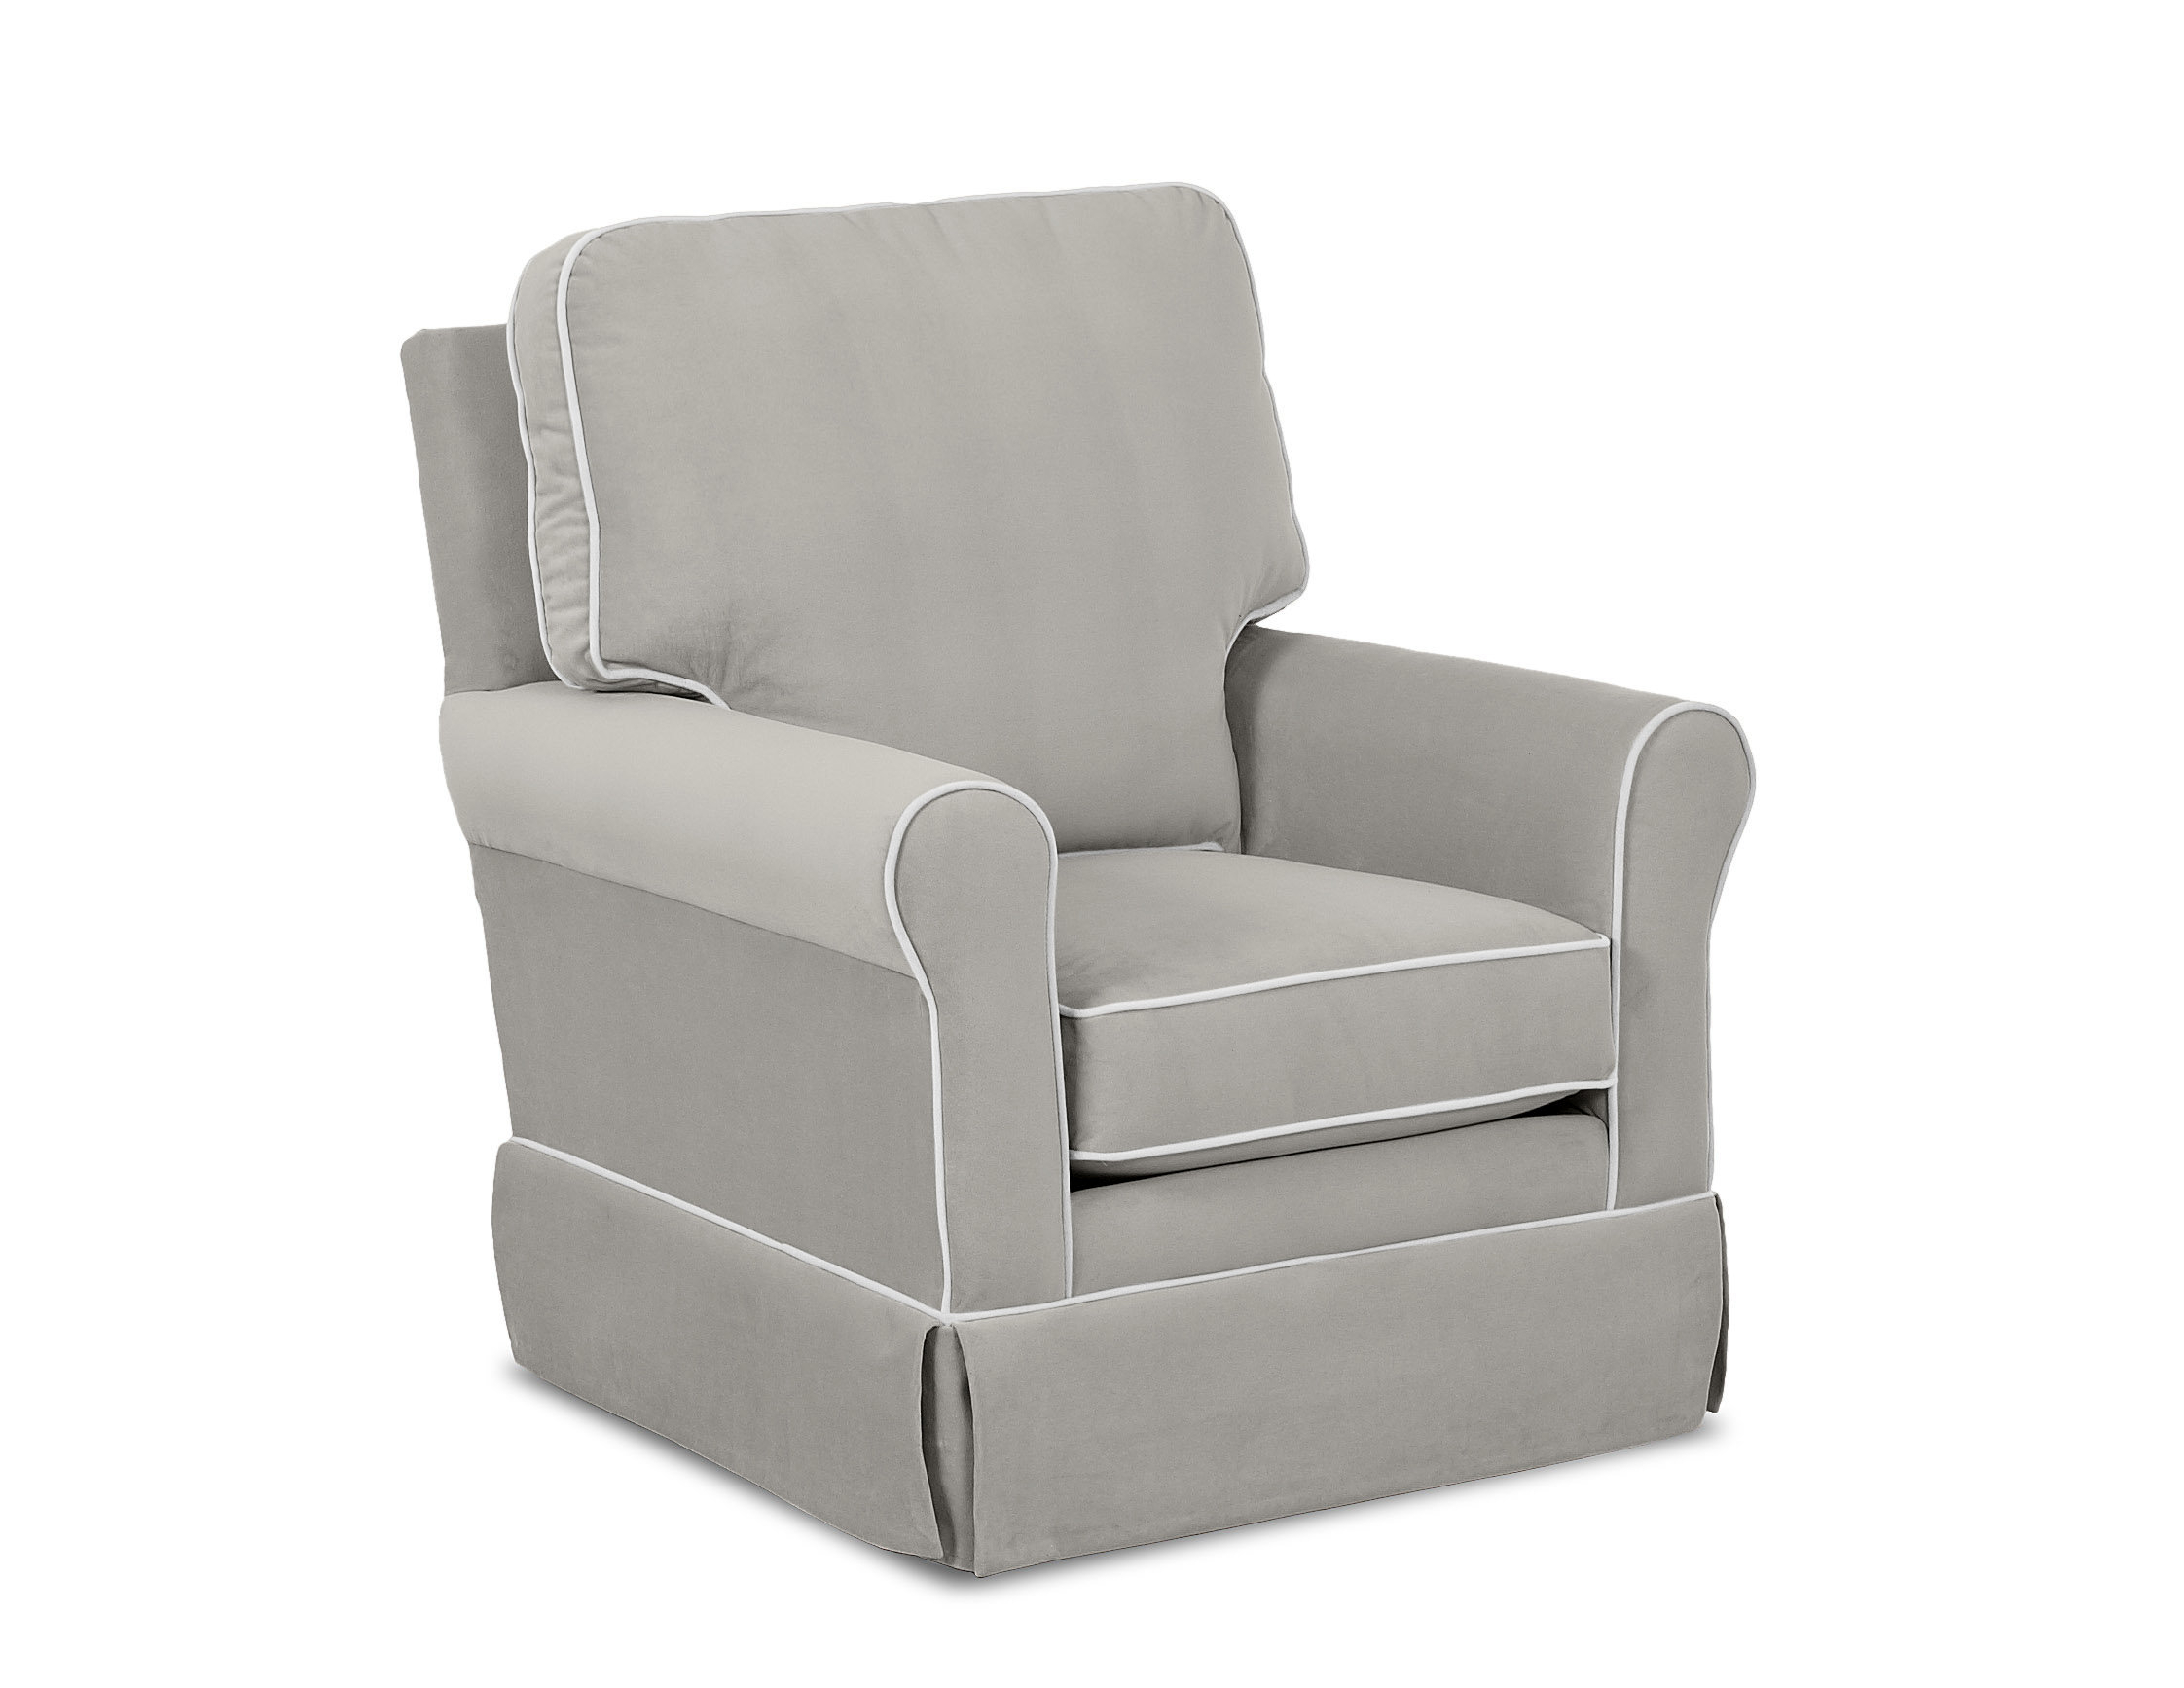 Wayfair Custom Upholstery™ Bridgeport Swivel Glider With Contrasting Pertaining To Katrina Grey Swivel Glider Chairs (View 2 of 25)